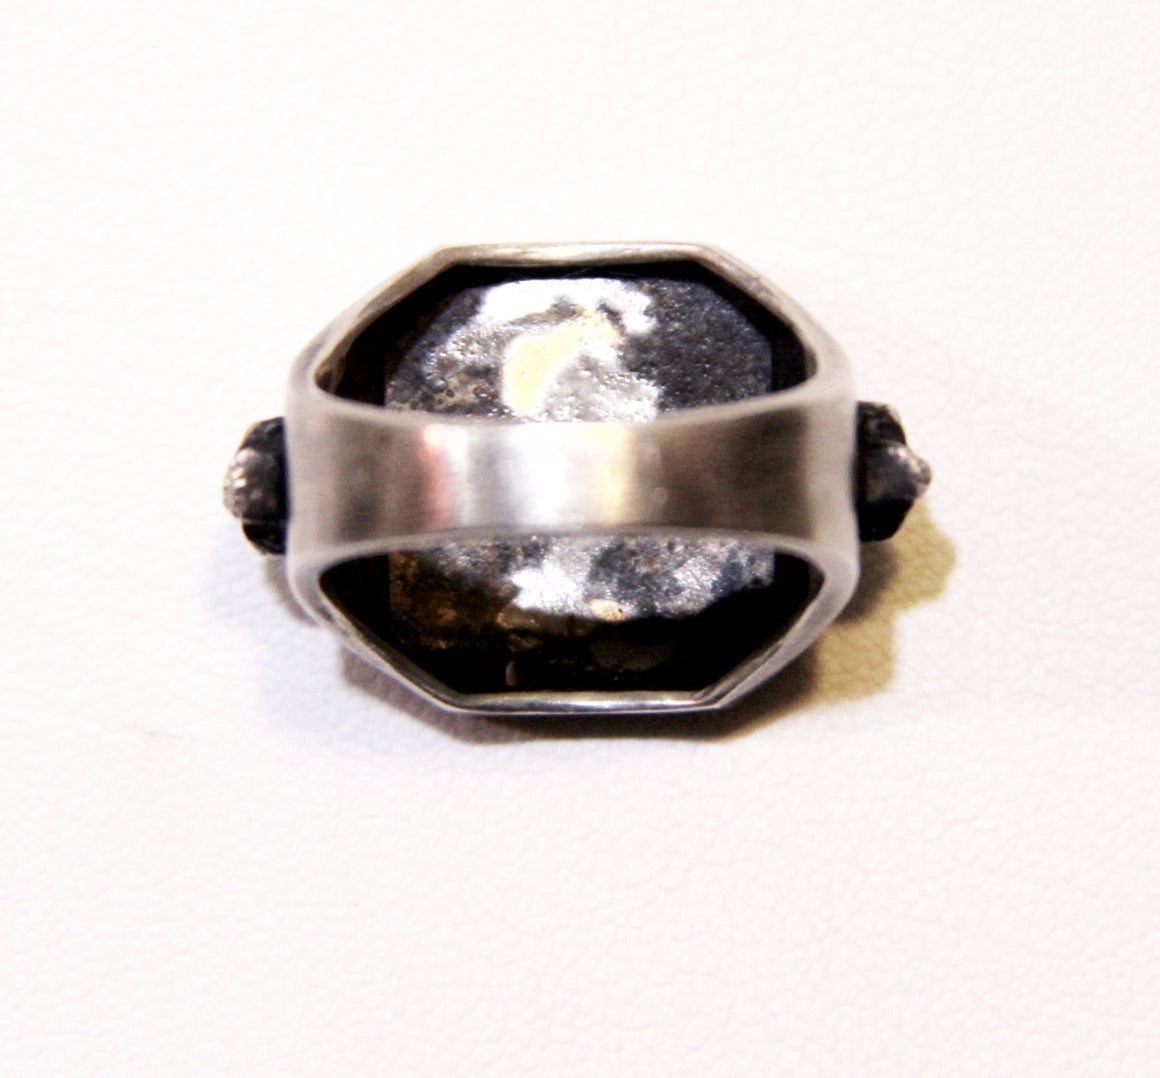 Until Death, Inc. Maltese Cross Signet Ring with Skull Accents. Solid 925 Sterling Silver.-UDINC0029